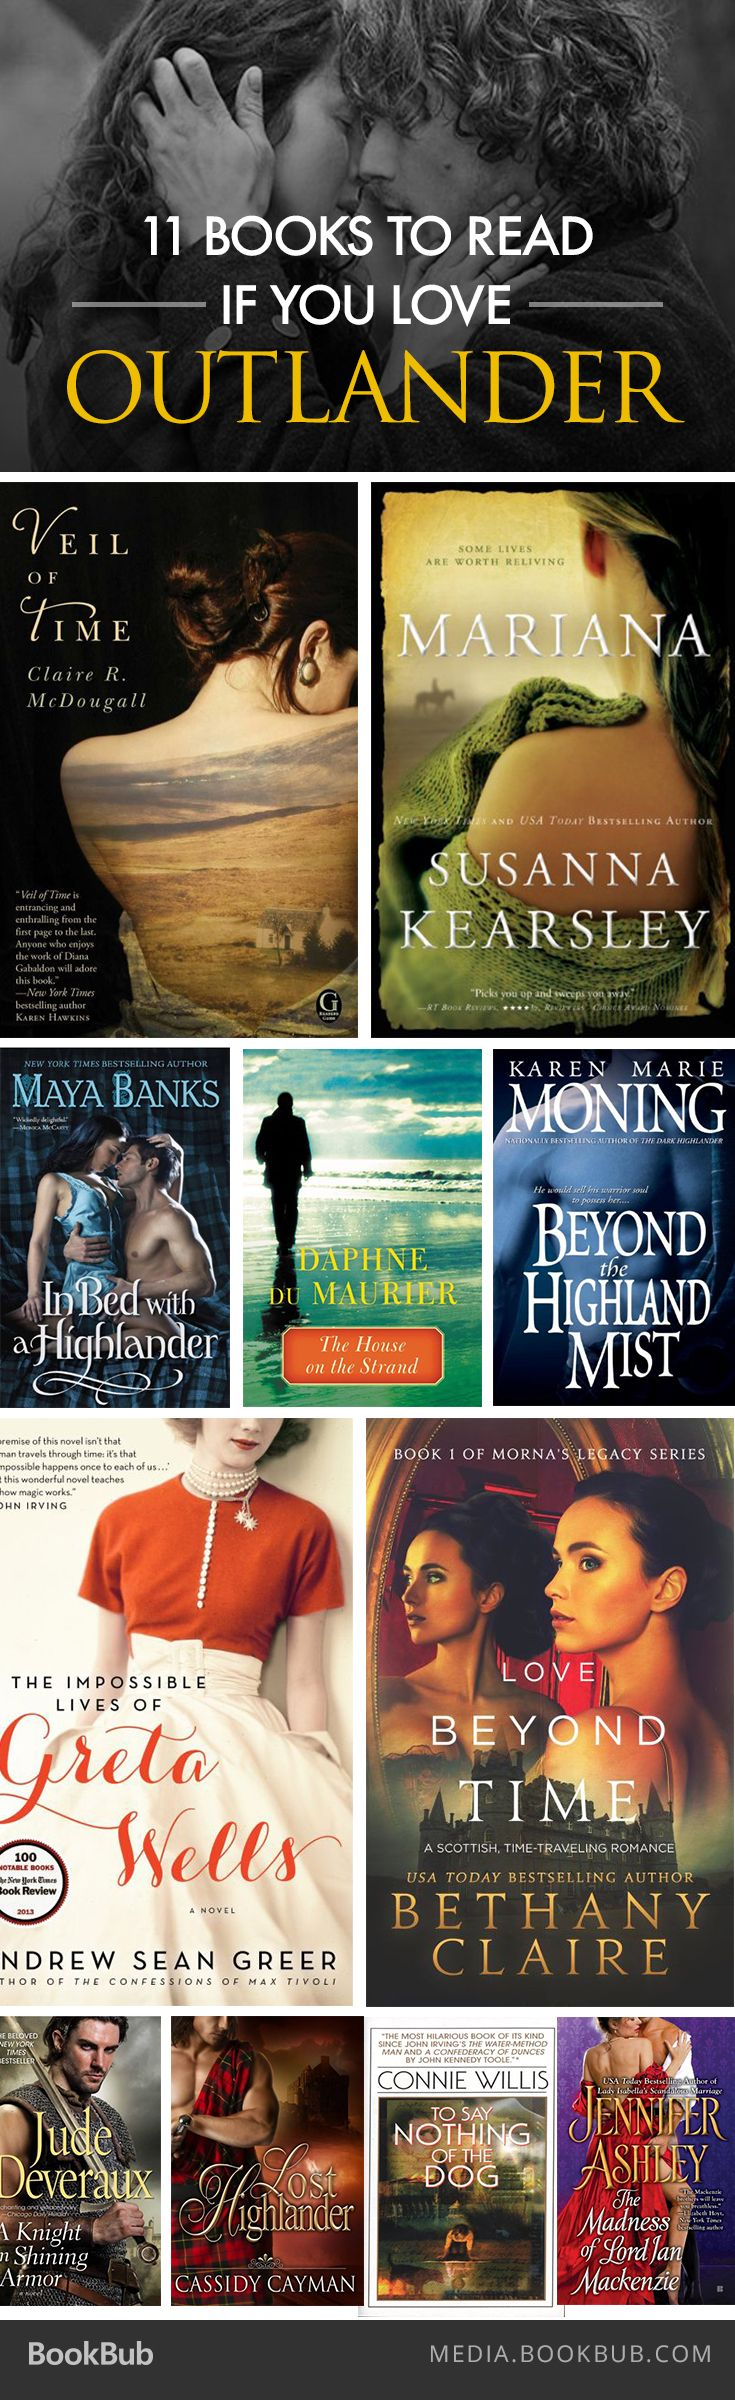 If you can't get enough of Diana Gabaldon's Outlander, check out our list of Scottish time-travel romances.